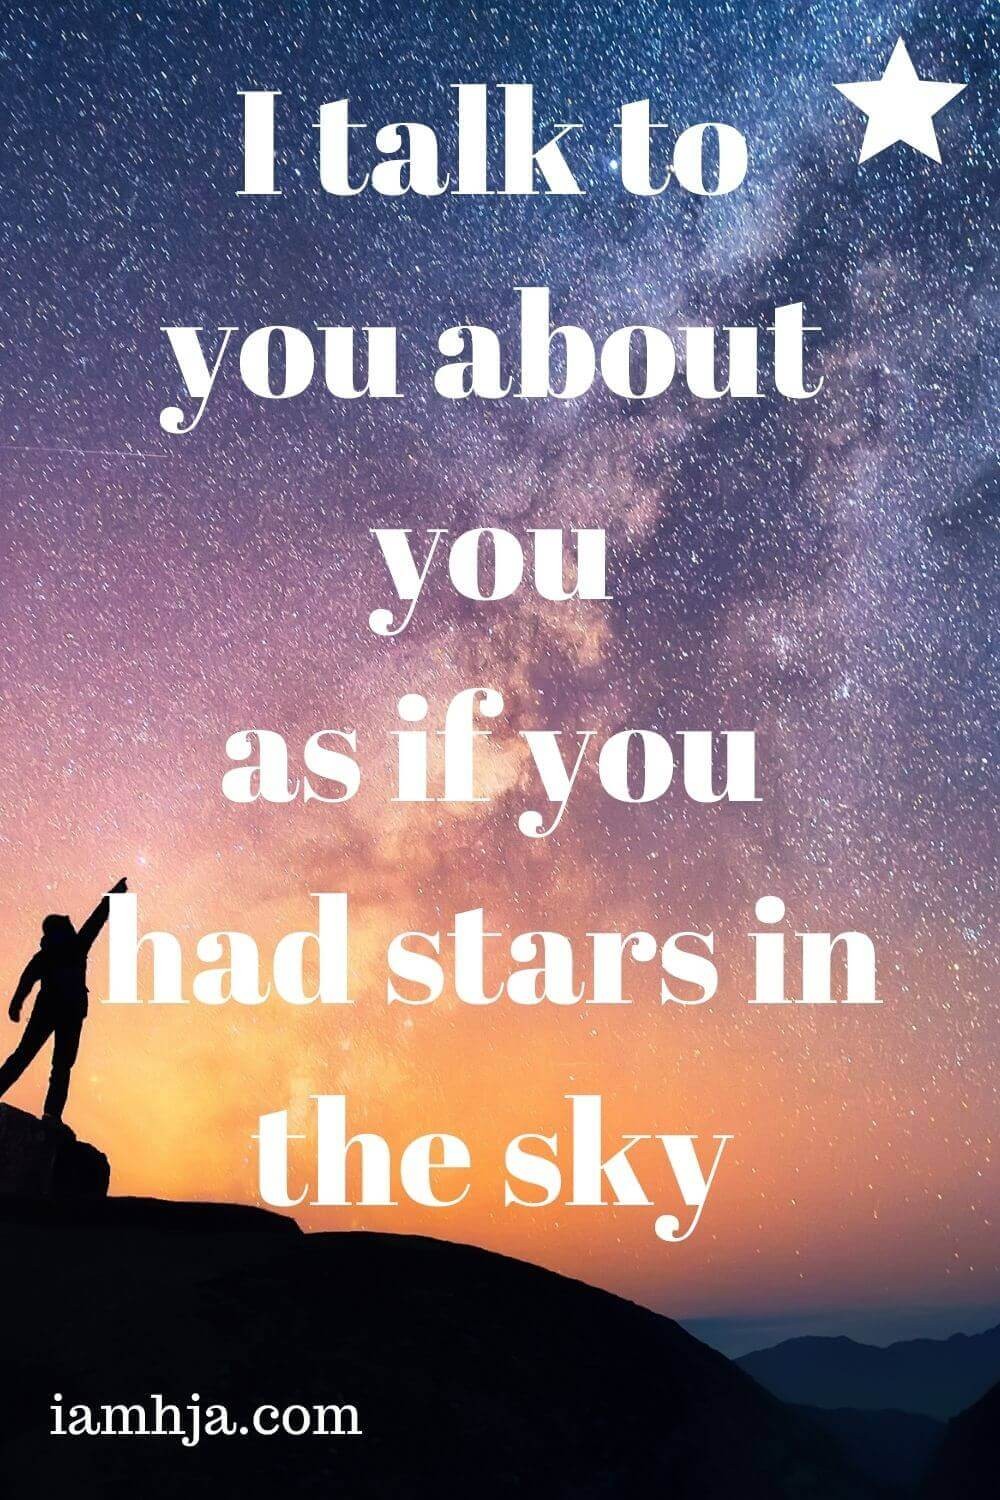 I talk to you about you as if you had stars in the sky